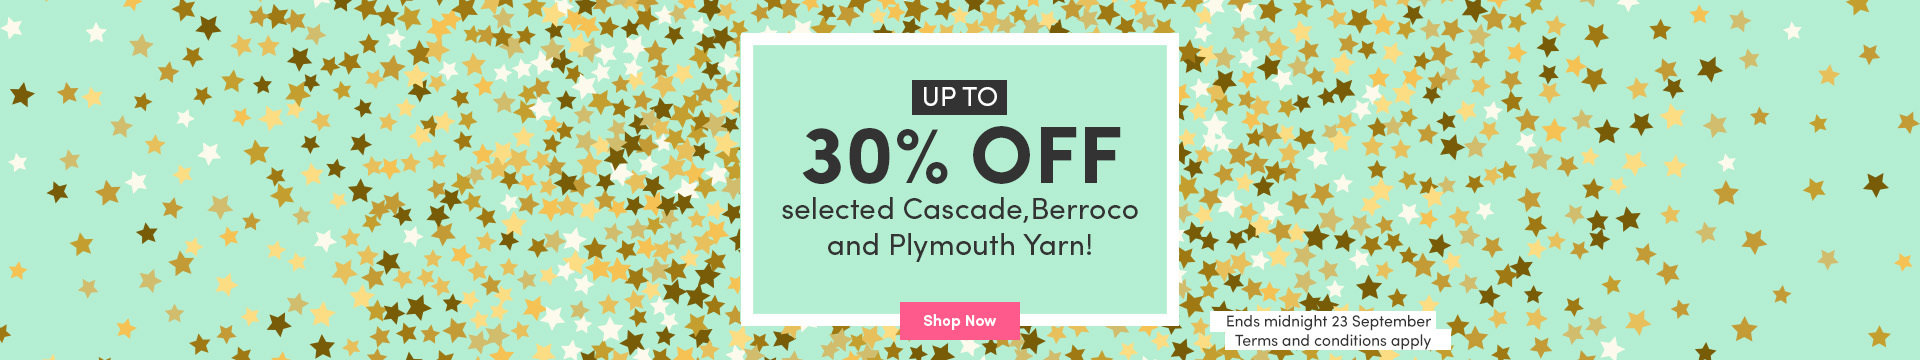 LC Marketing - 30% off Berroco, Plymouth, Cascade